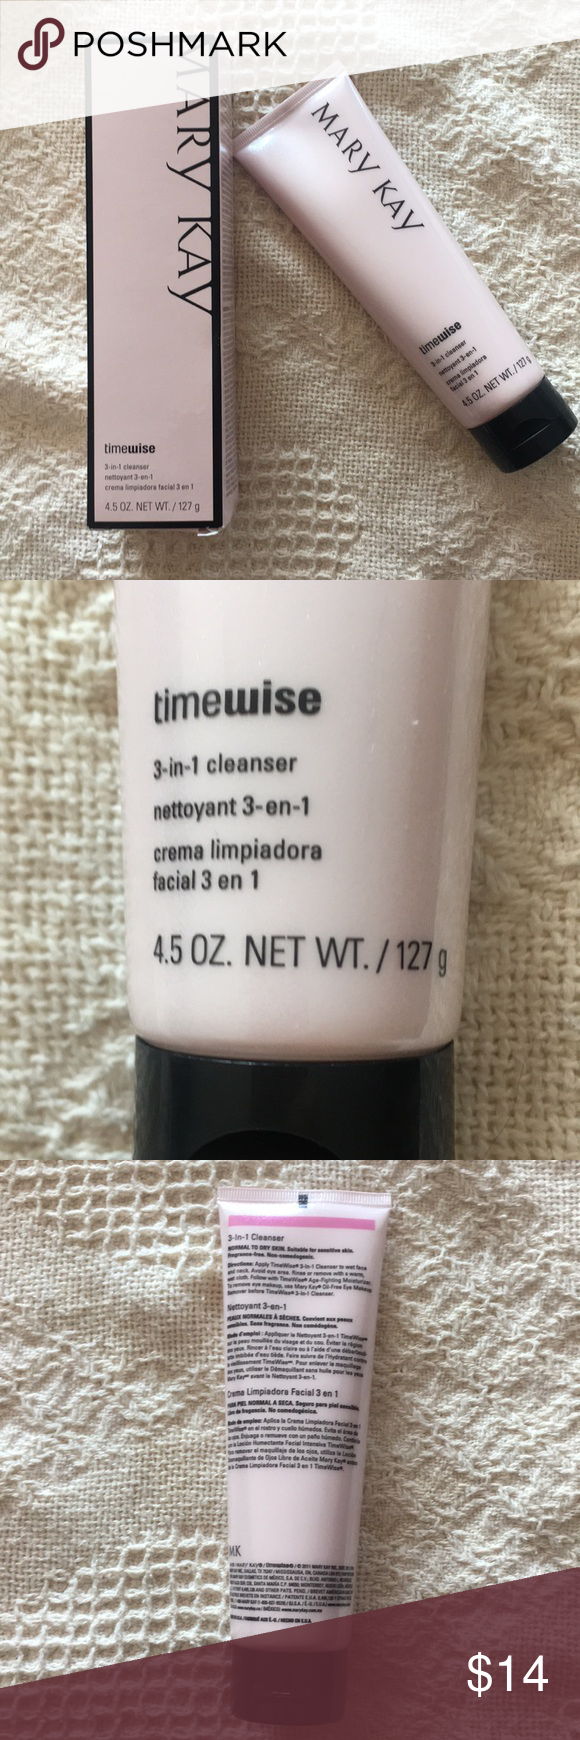 TimeWise 3in1 Cleanser Cleanser for normal to dry skin